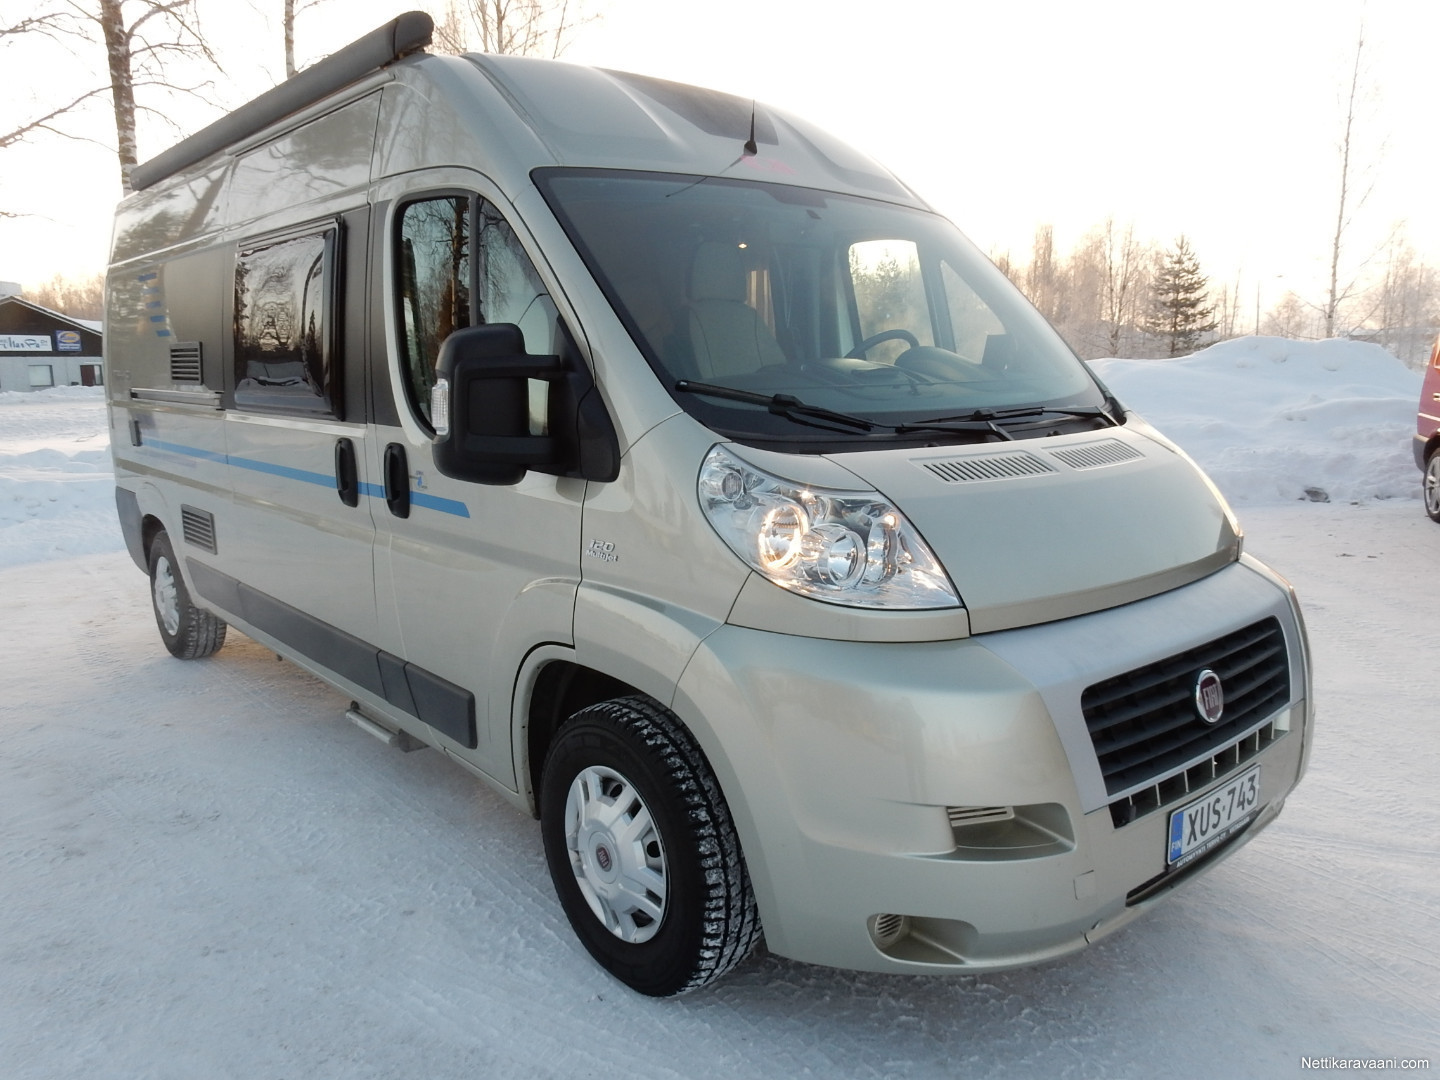 Discover the value of the Ducato, the Fiat motorhome that has achieved the highest level of quality in technology, safety, reliability and comfort.